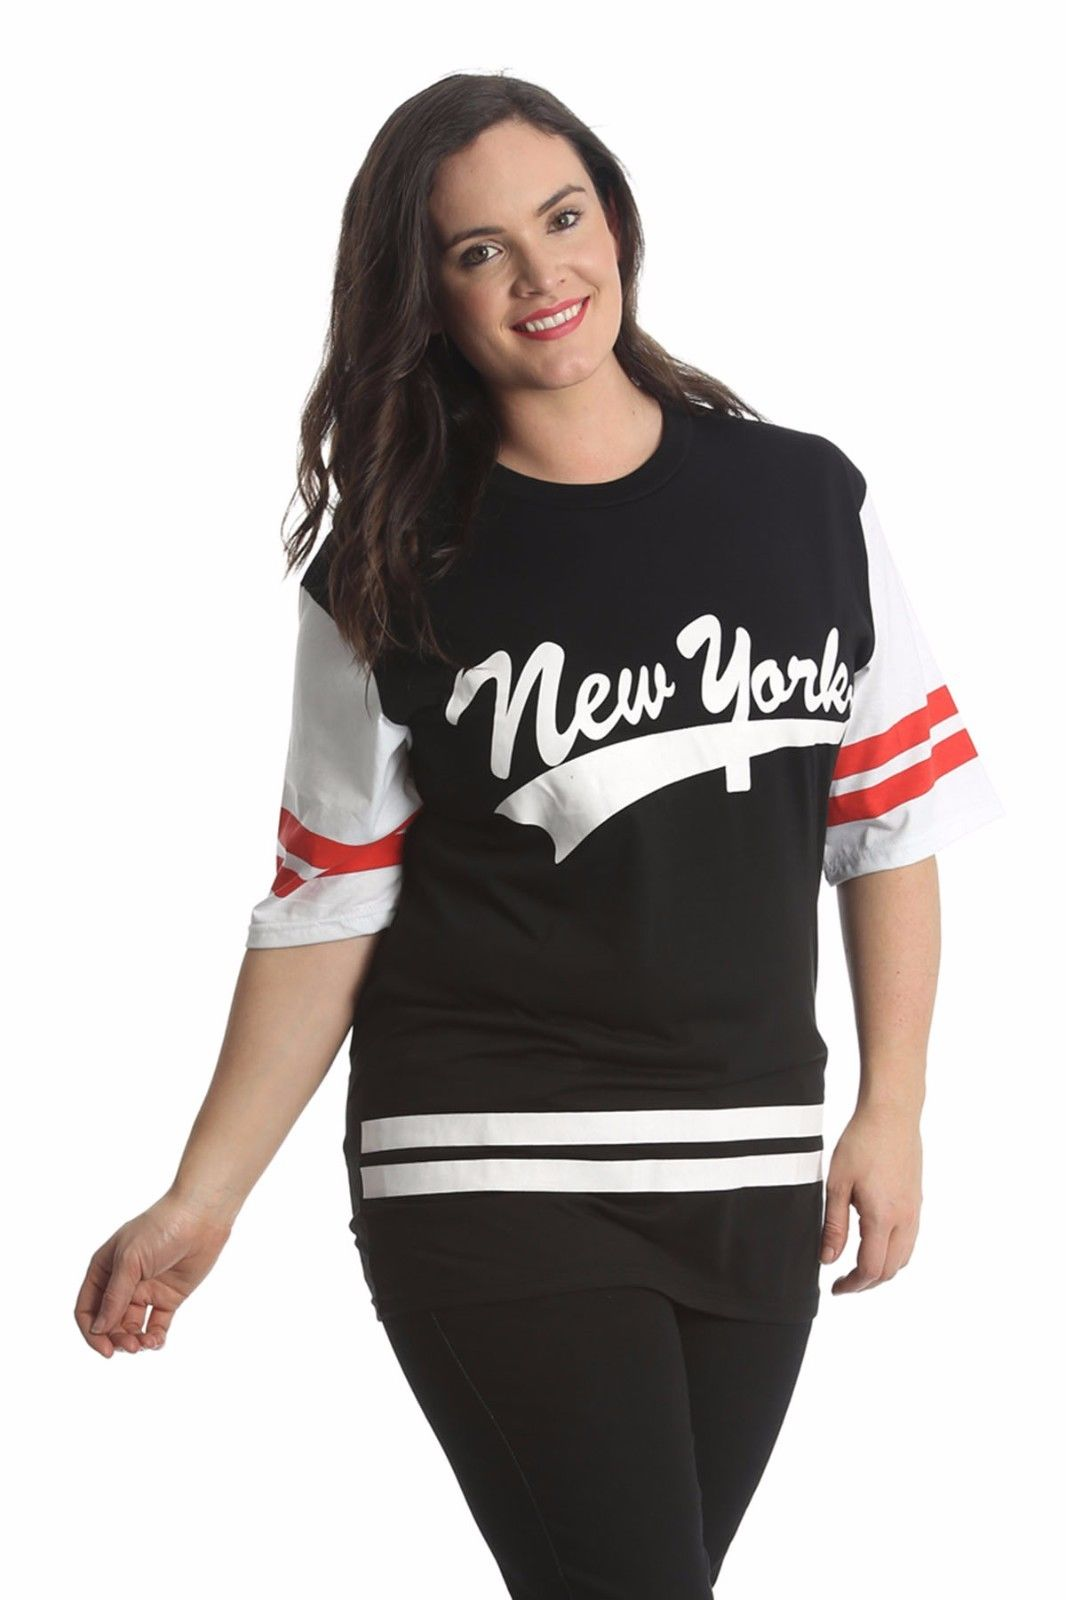 Discover the perfect fit with plus size designer clothes by Lafayette New York. Shop today for an incredible selection of women's plus size clothing.